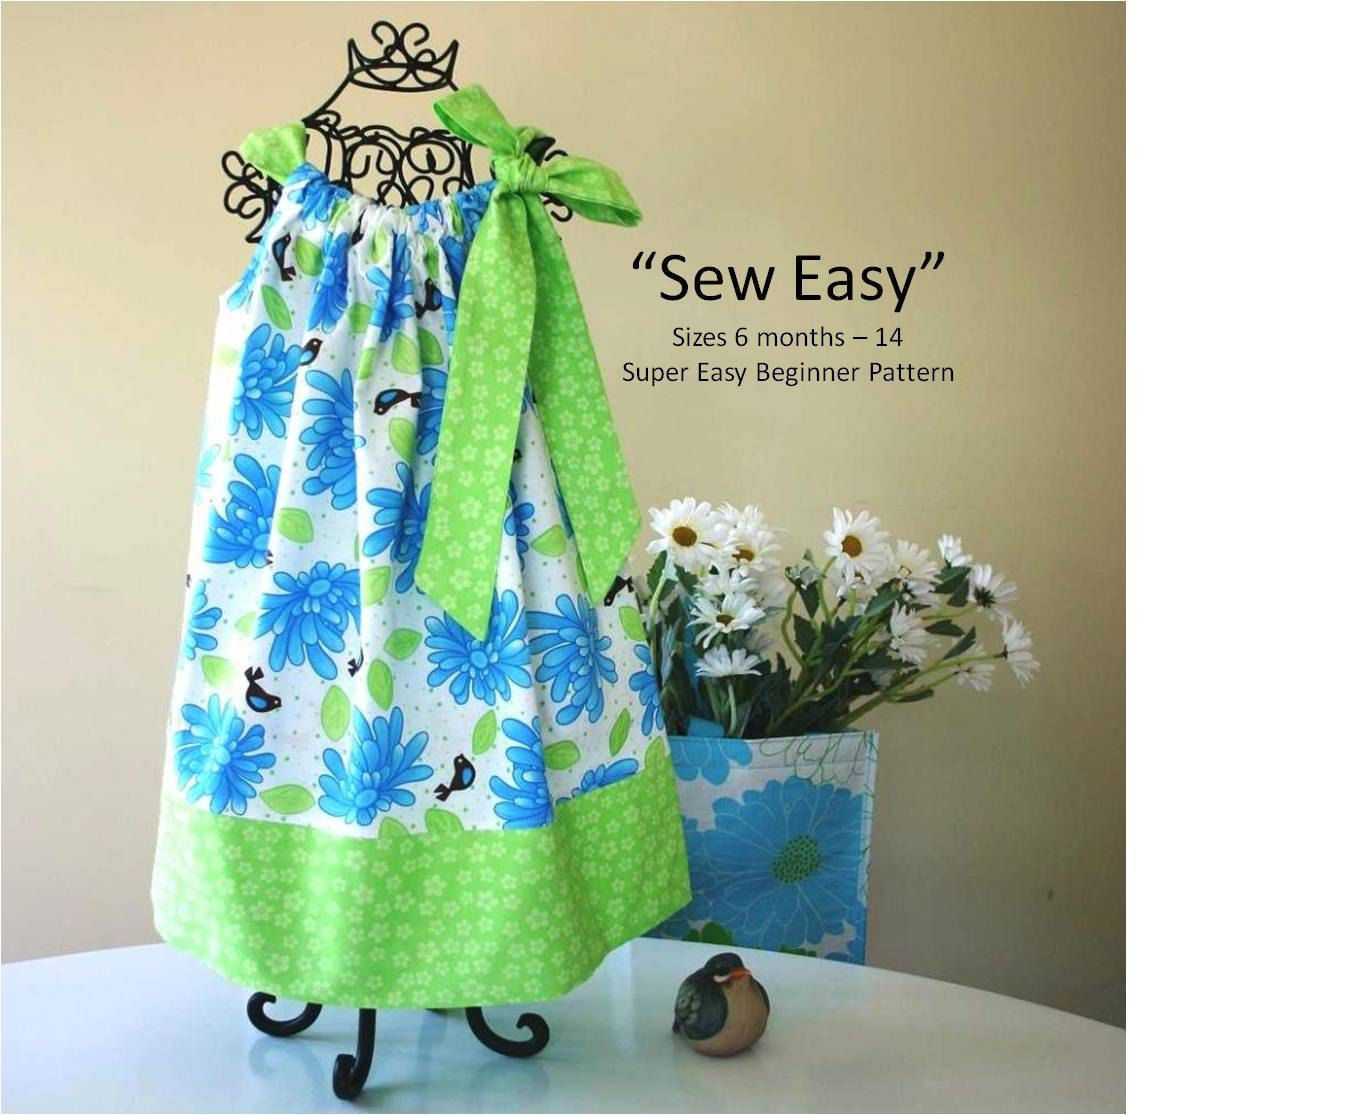 Sew easy pillowcase dress pattern instant download pdf pattern sew easy pillowcase dress pattern instant download pdf pattern size 6 mos baby jeuxipadfo Choice Image